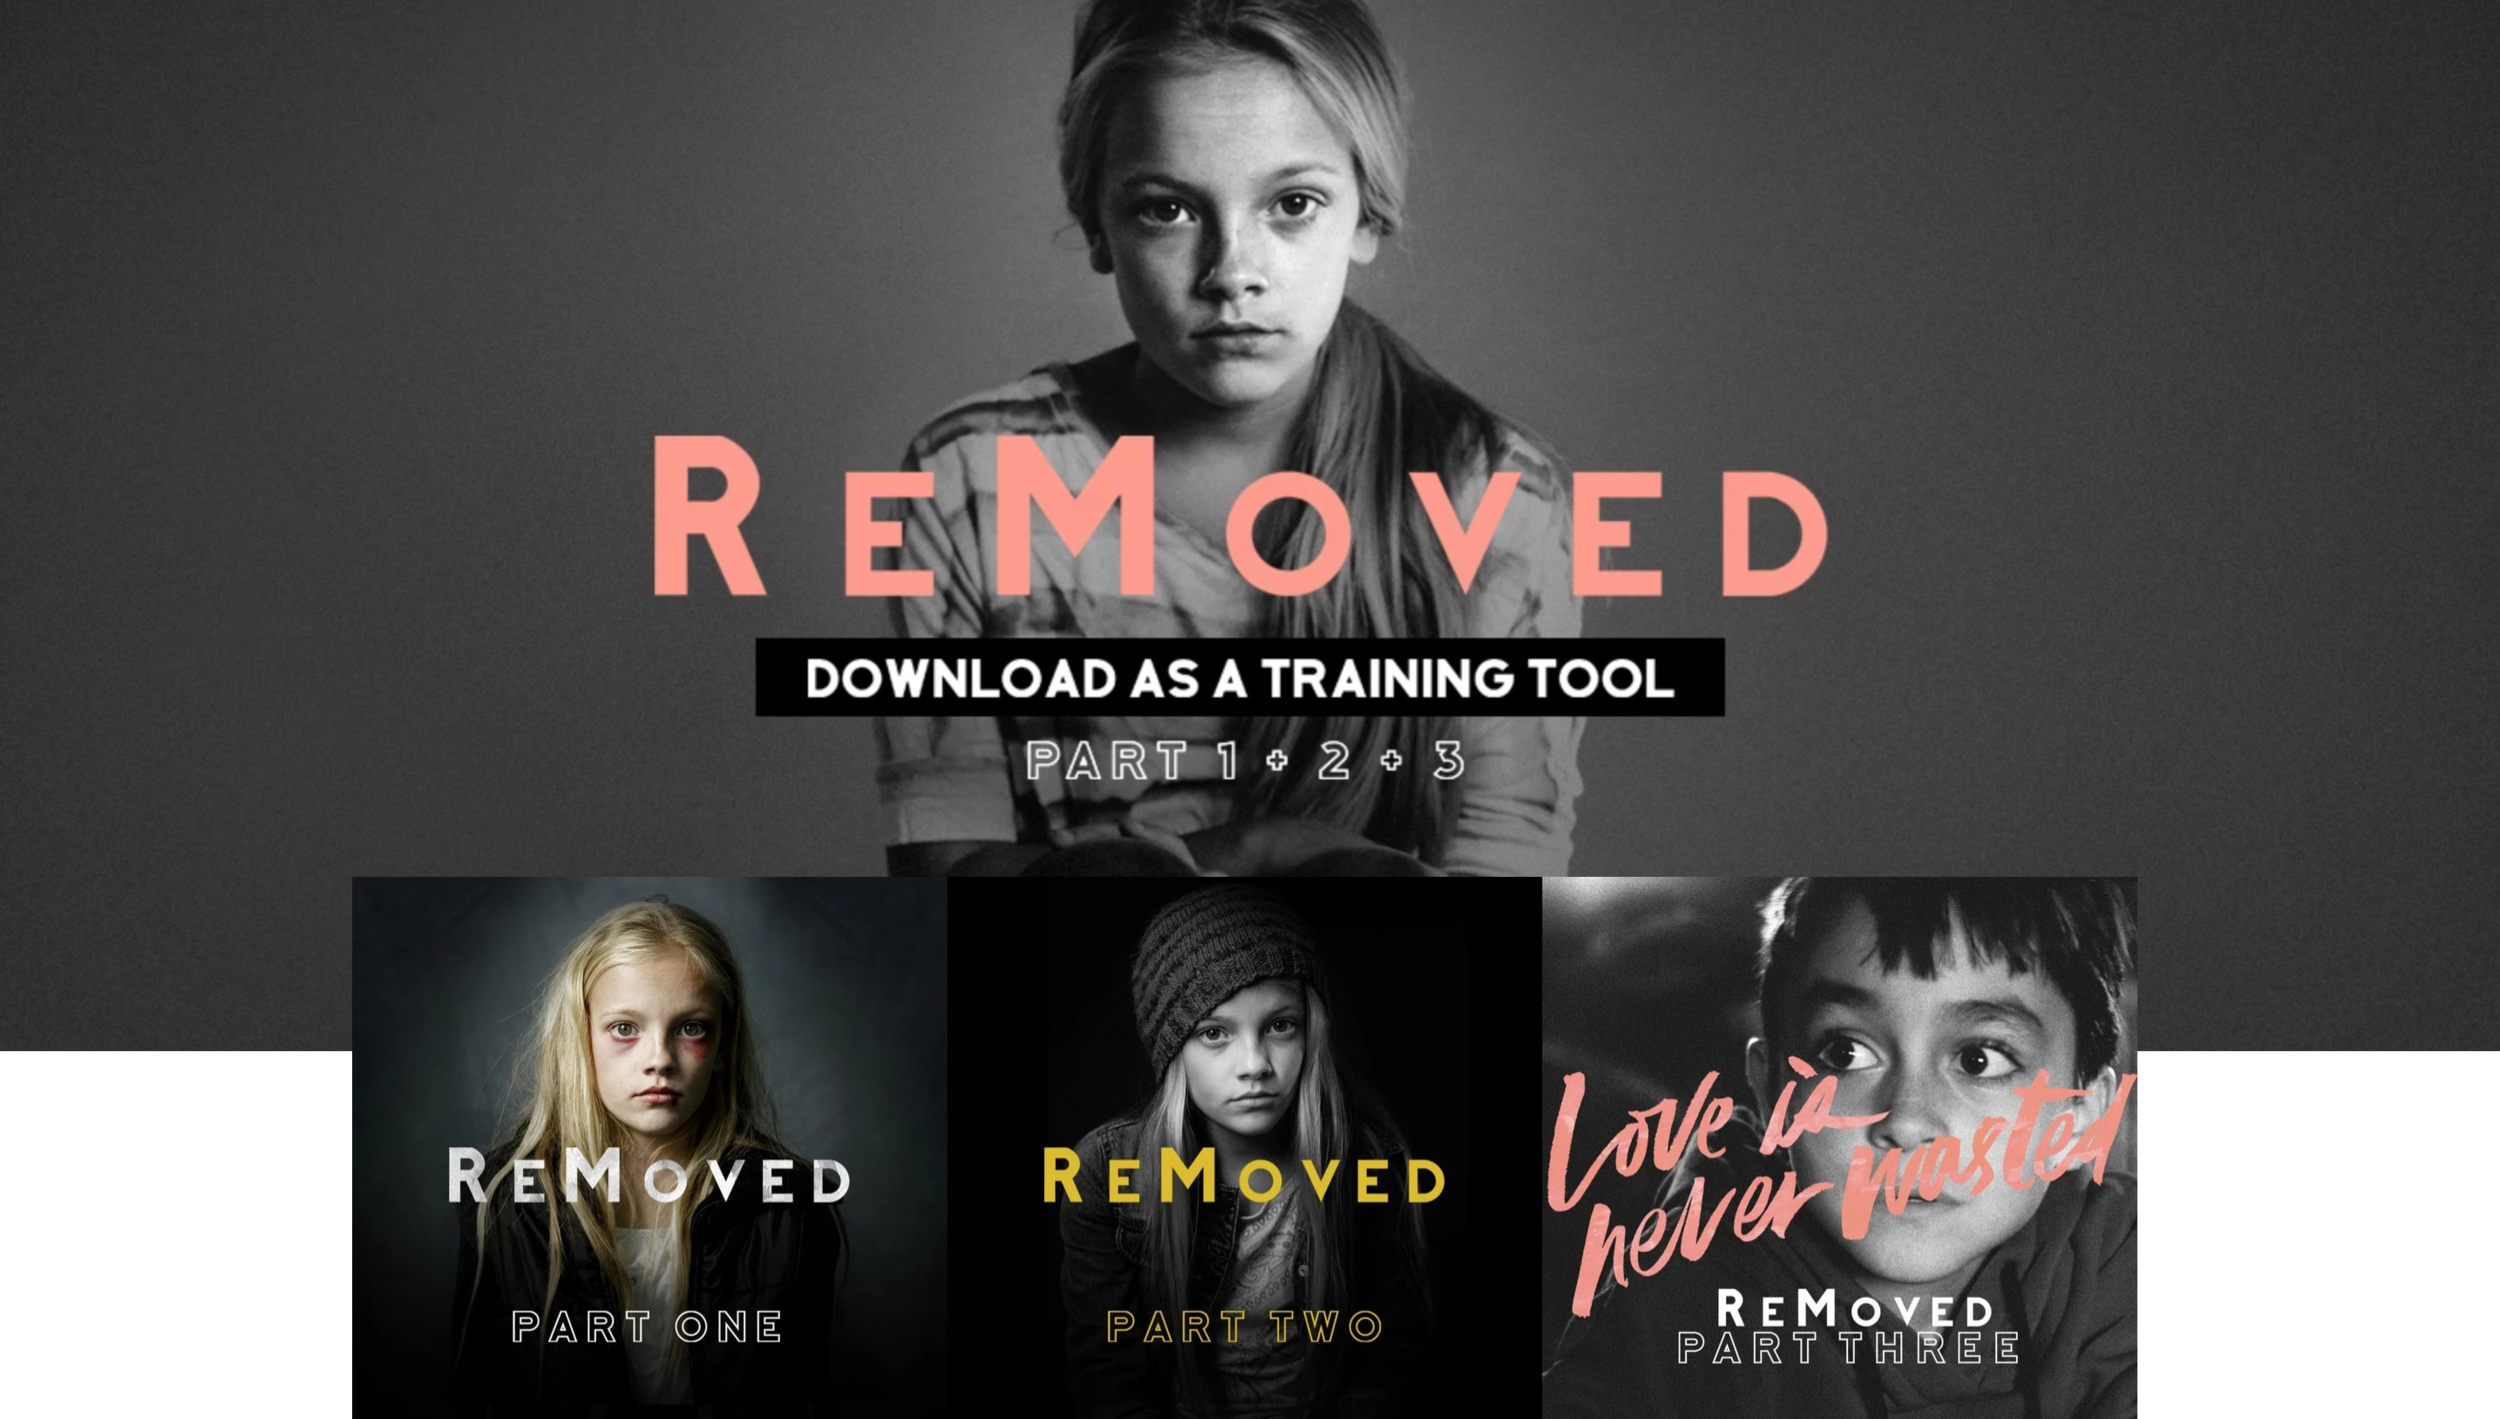 REMOVED - The ReMoved Films are being created with the intent to bring light to the often unknown subjects of Foster Care and Child Abuse/Neglect. The films educate those who are learning, while simultaneously identifying with those who understand all too well. The films are available online to watch for free. We do this because even though the cost of creating a film is high, we believe these films can have the most impact when they're most easily accessible.